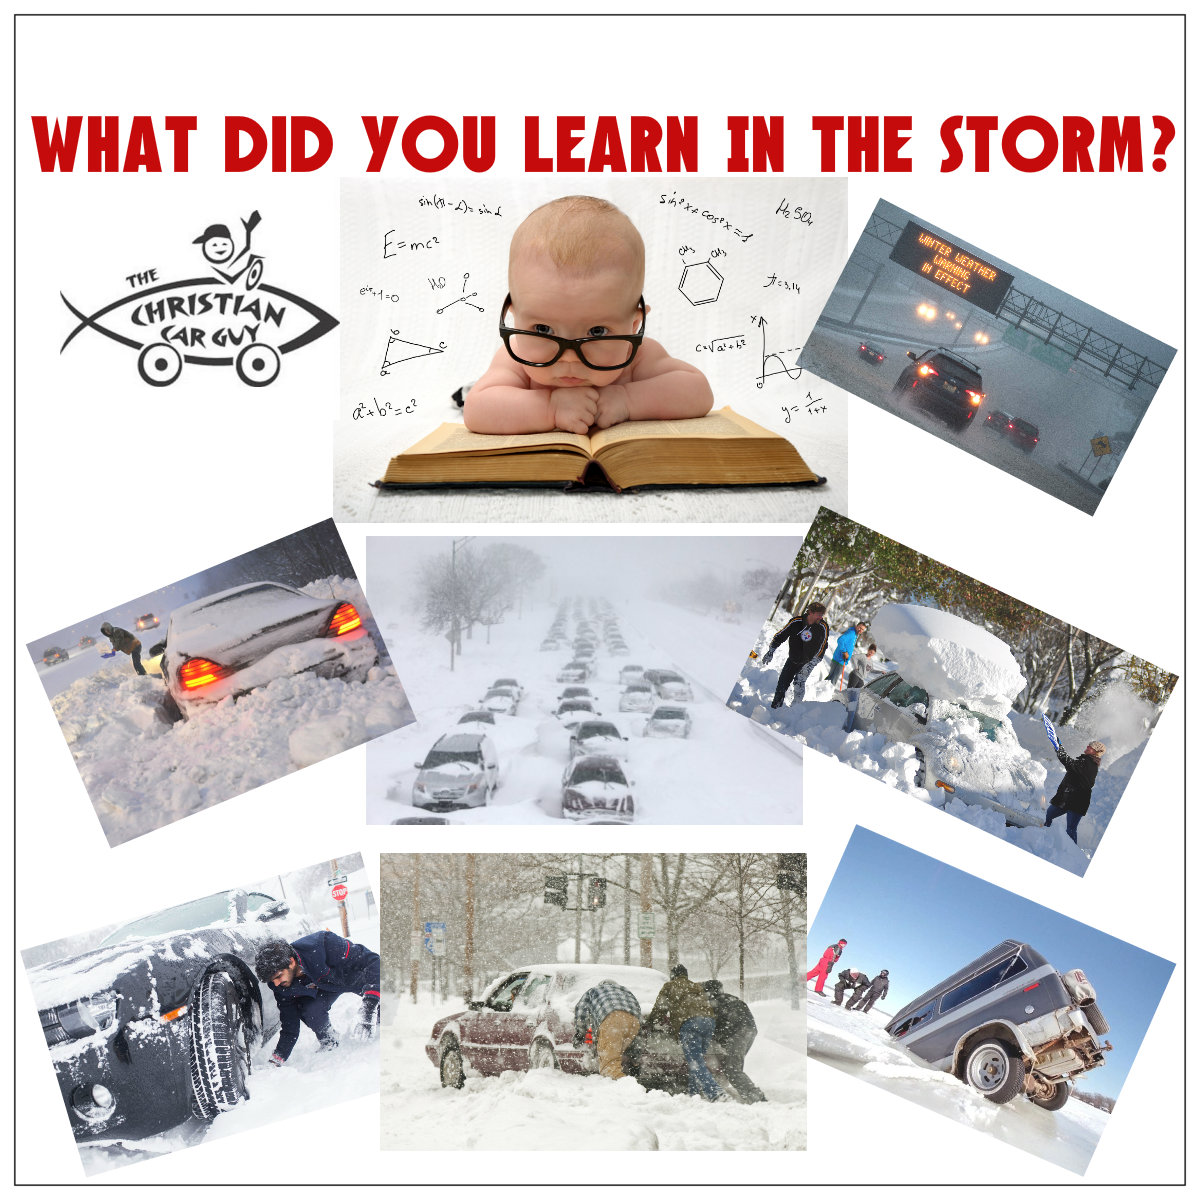 What Did You Learn In The Winter Storm